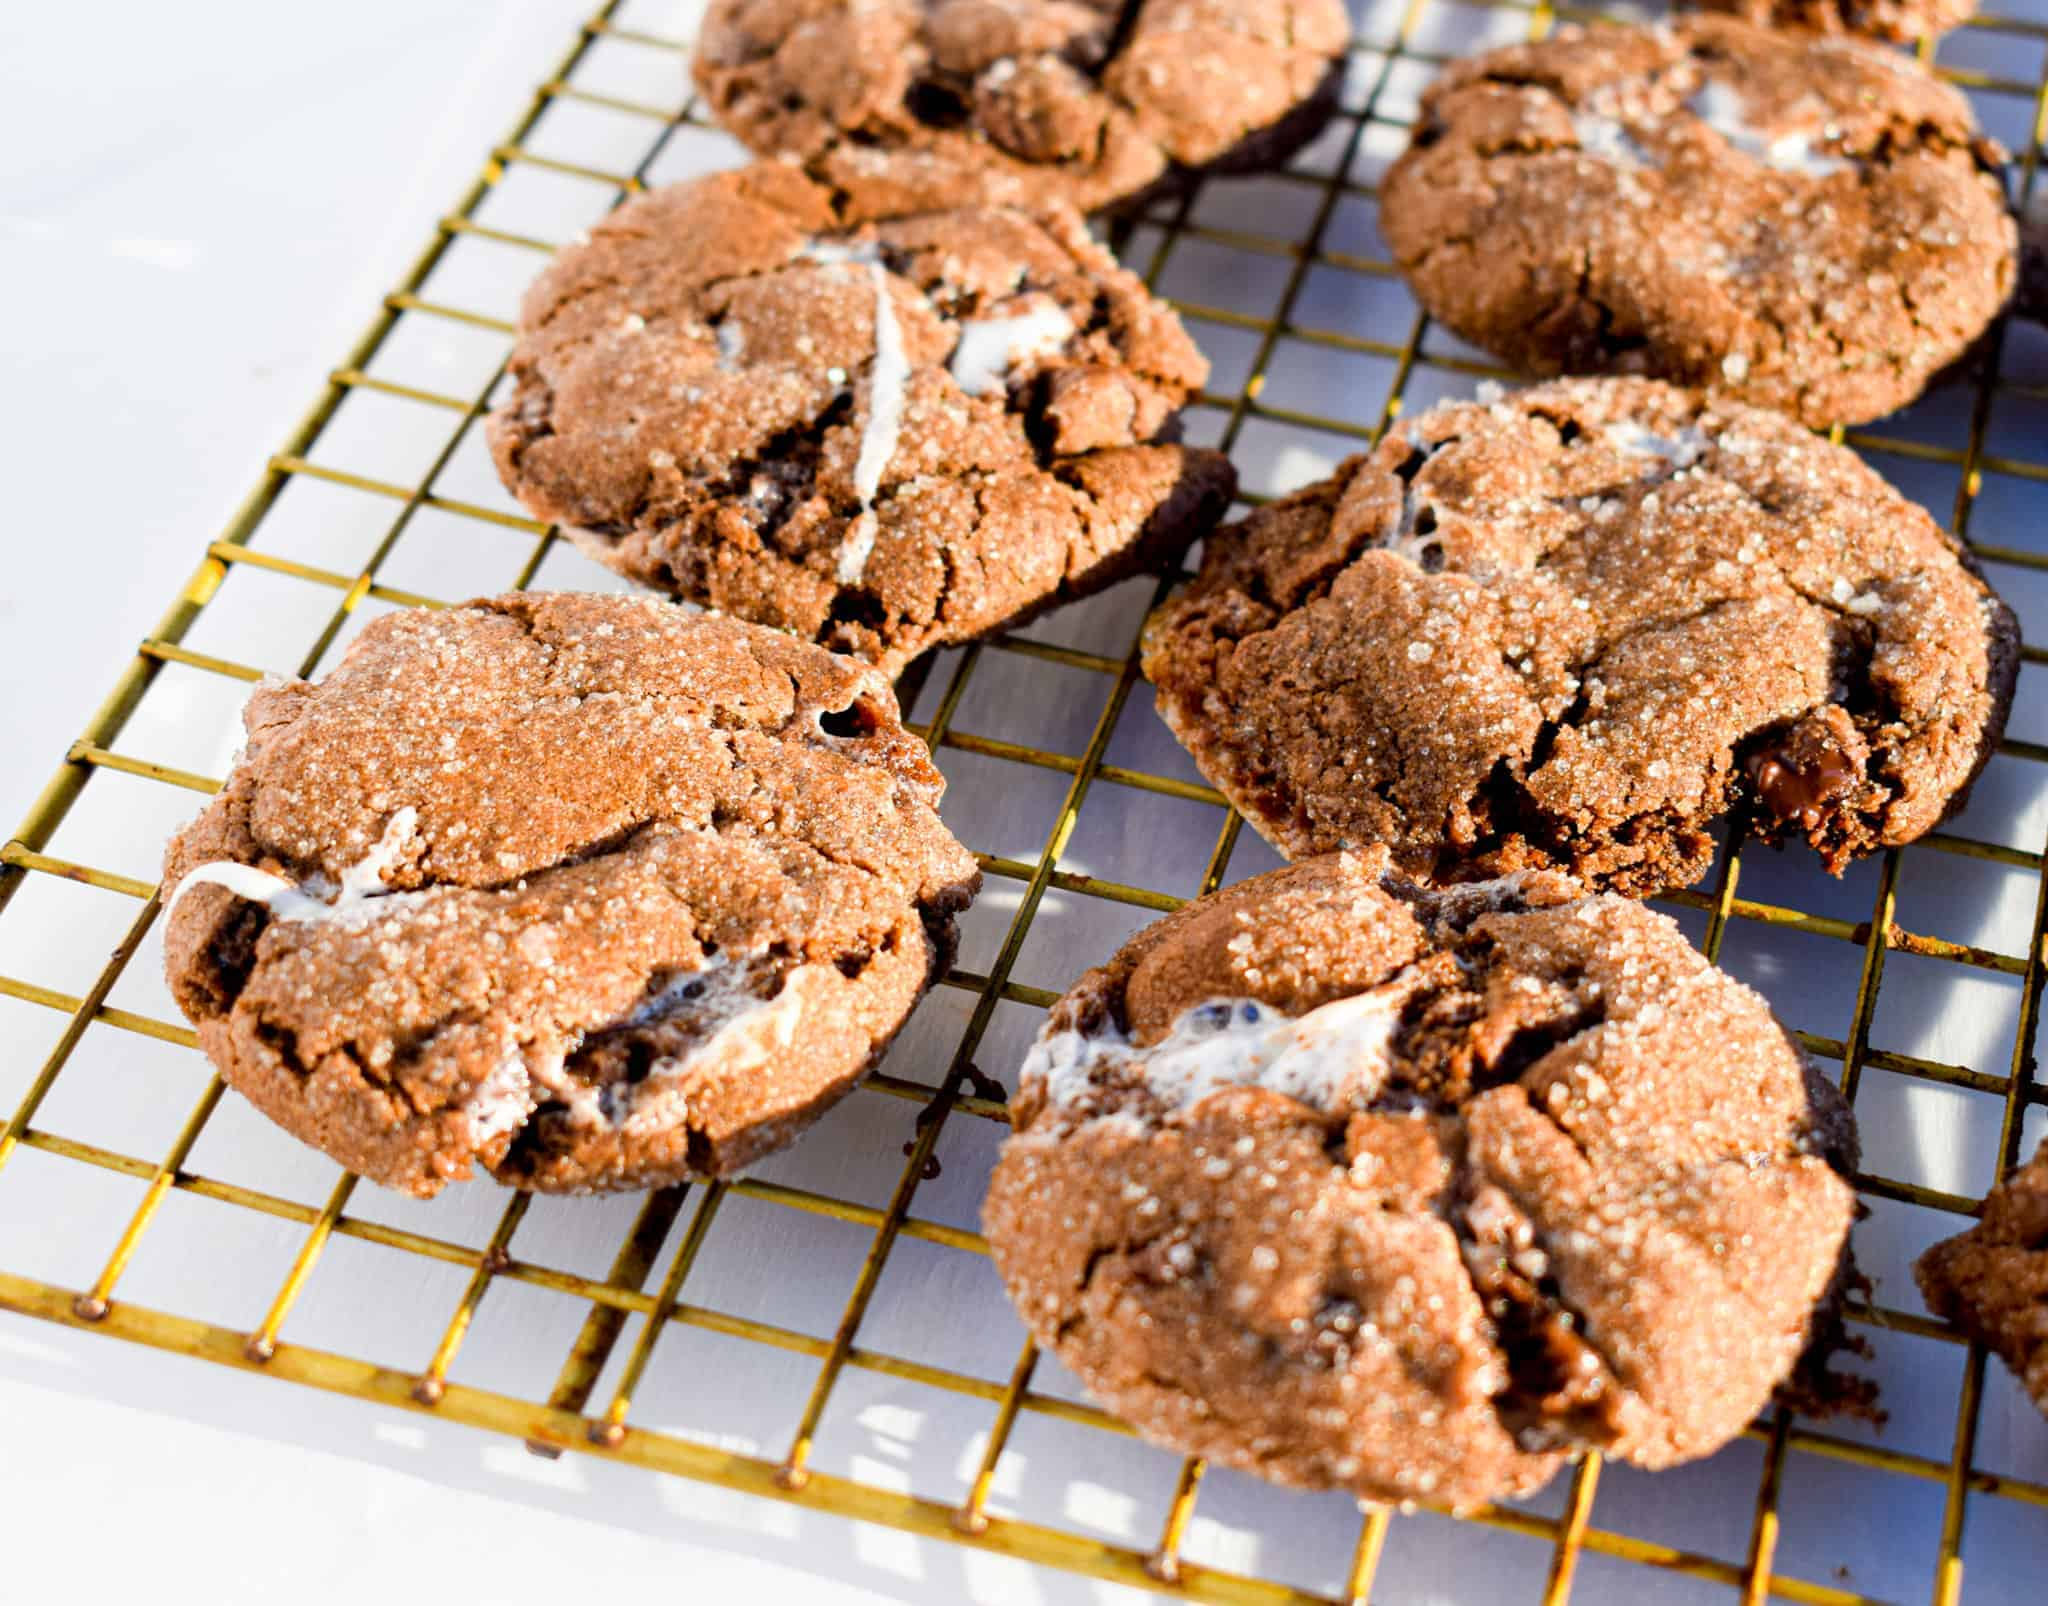 Mexican hot chocolate cookies by the jam jar cookies with marshmallows and chocolate chips